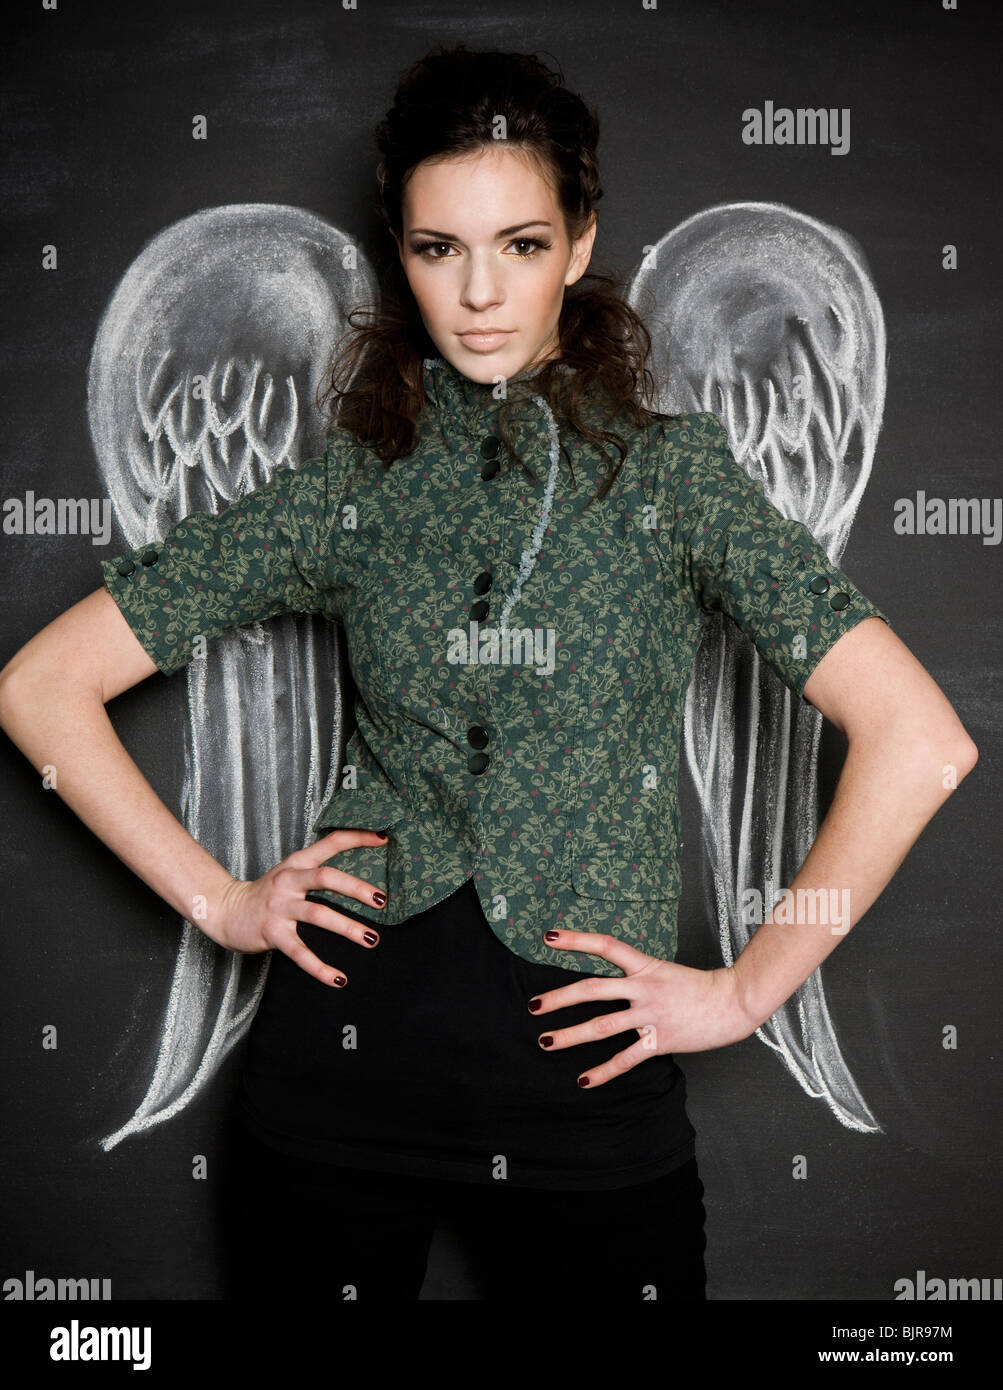 woman with angel wings - Stock Image